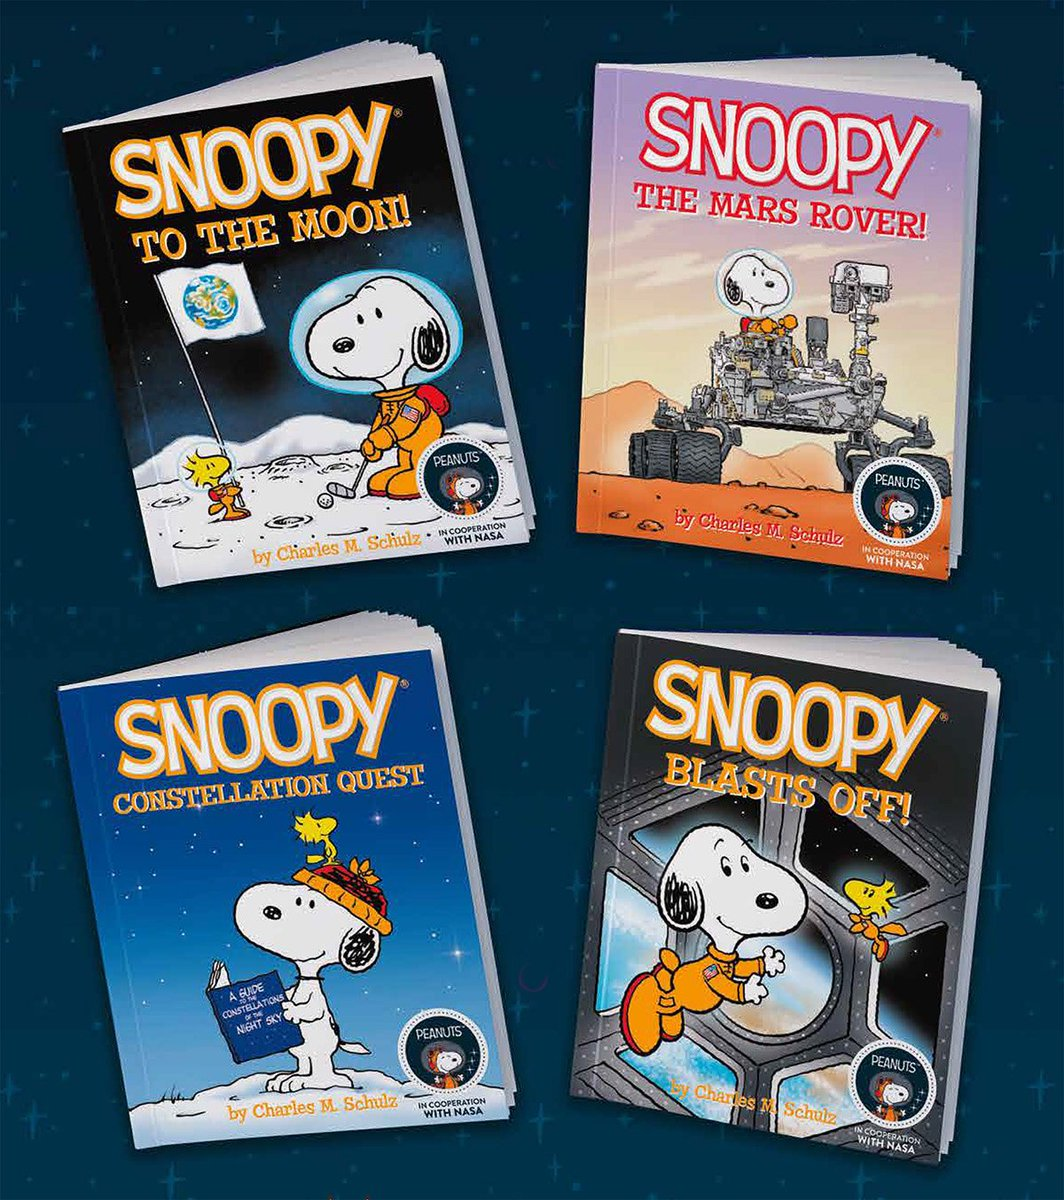 NASA and Snoopy. Name a better combination.   Beloved Peanuts Worldwide character, Snoopy, will spend 2019 decked out in space-themed attire to commemorate the 50th anniversary of Apollo's Moon landing.   :  https:// go.nasa.gov/2ZiOqqo     #Apollo50th <br>http://pic.twitter.com/aU2JFBucIr